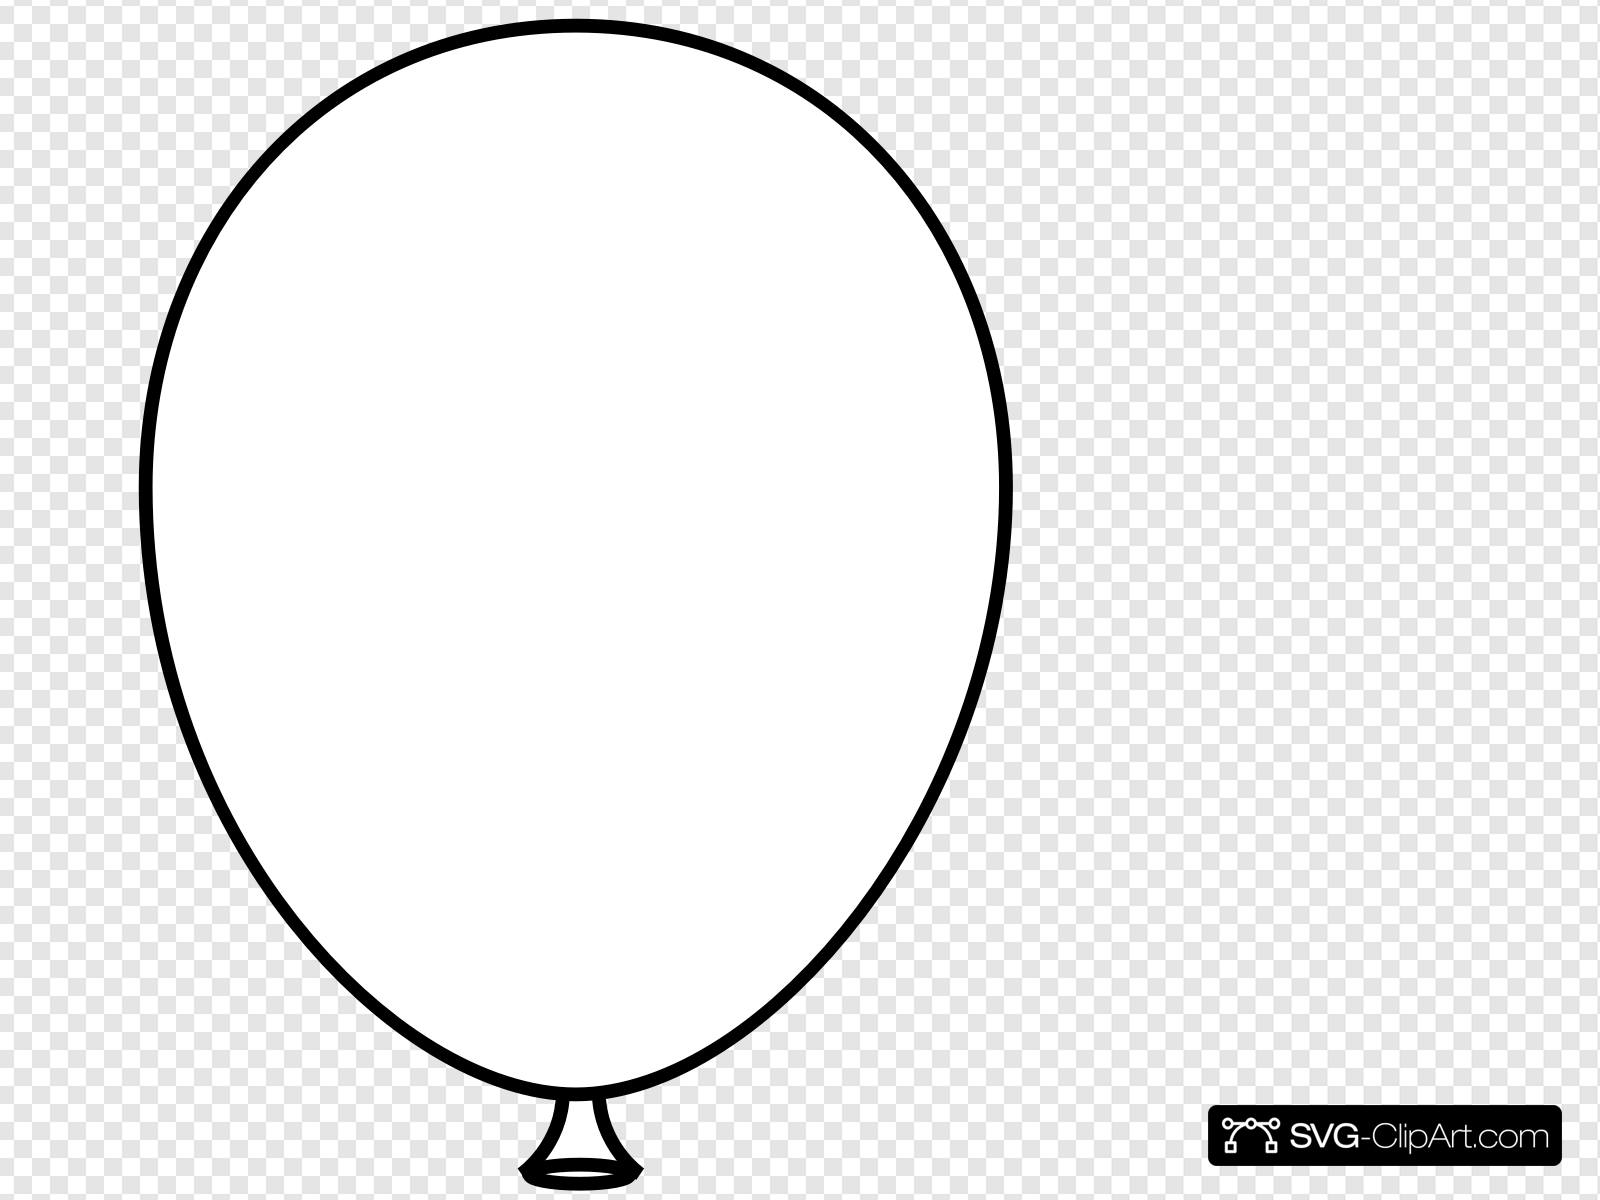 White Balloon Bold Clip art, Icon and SVG.